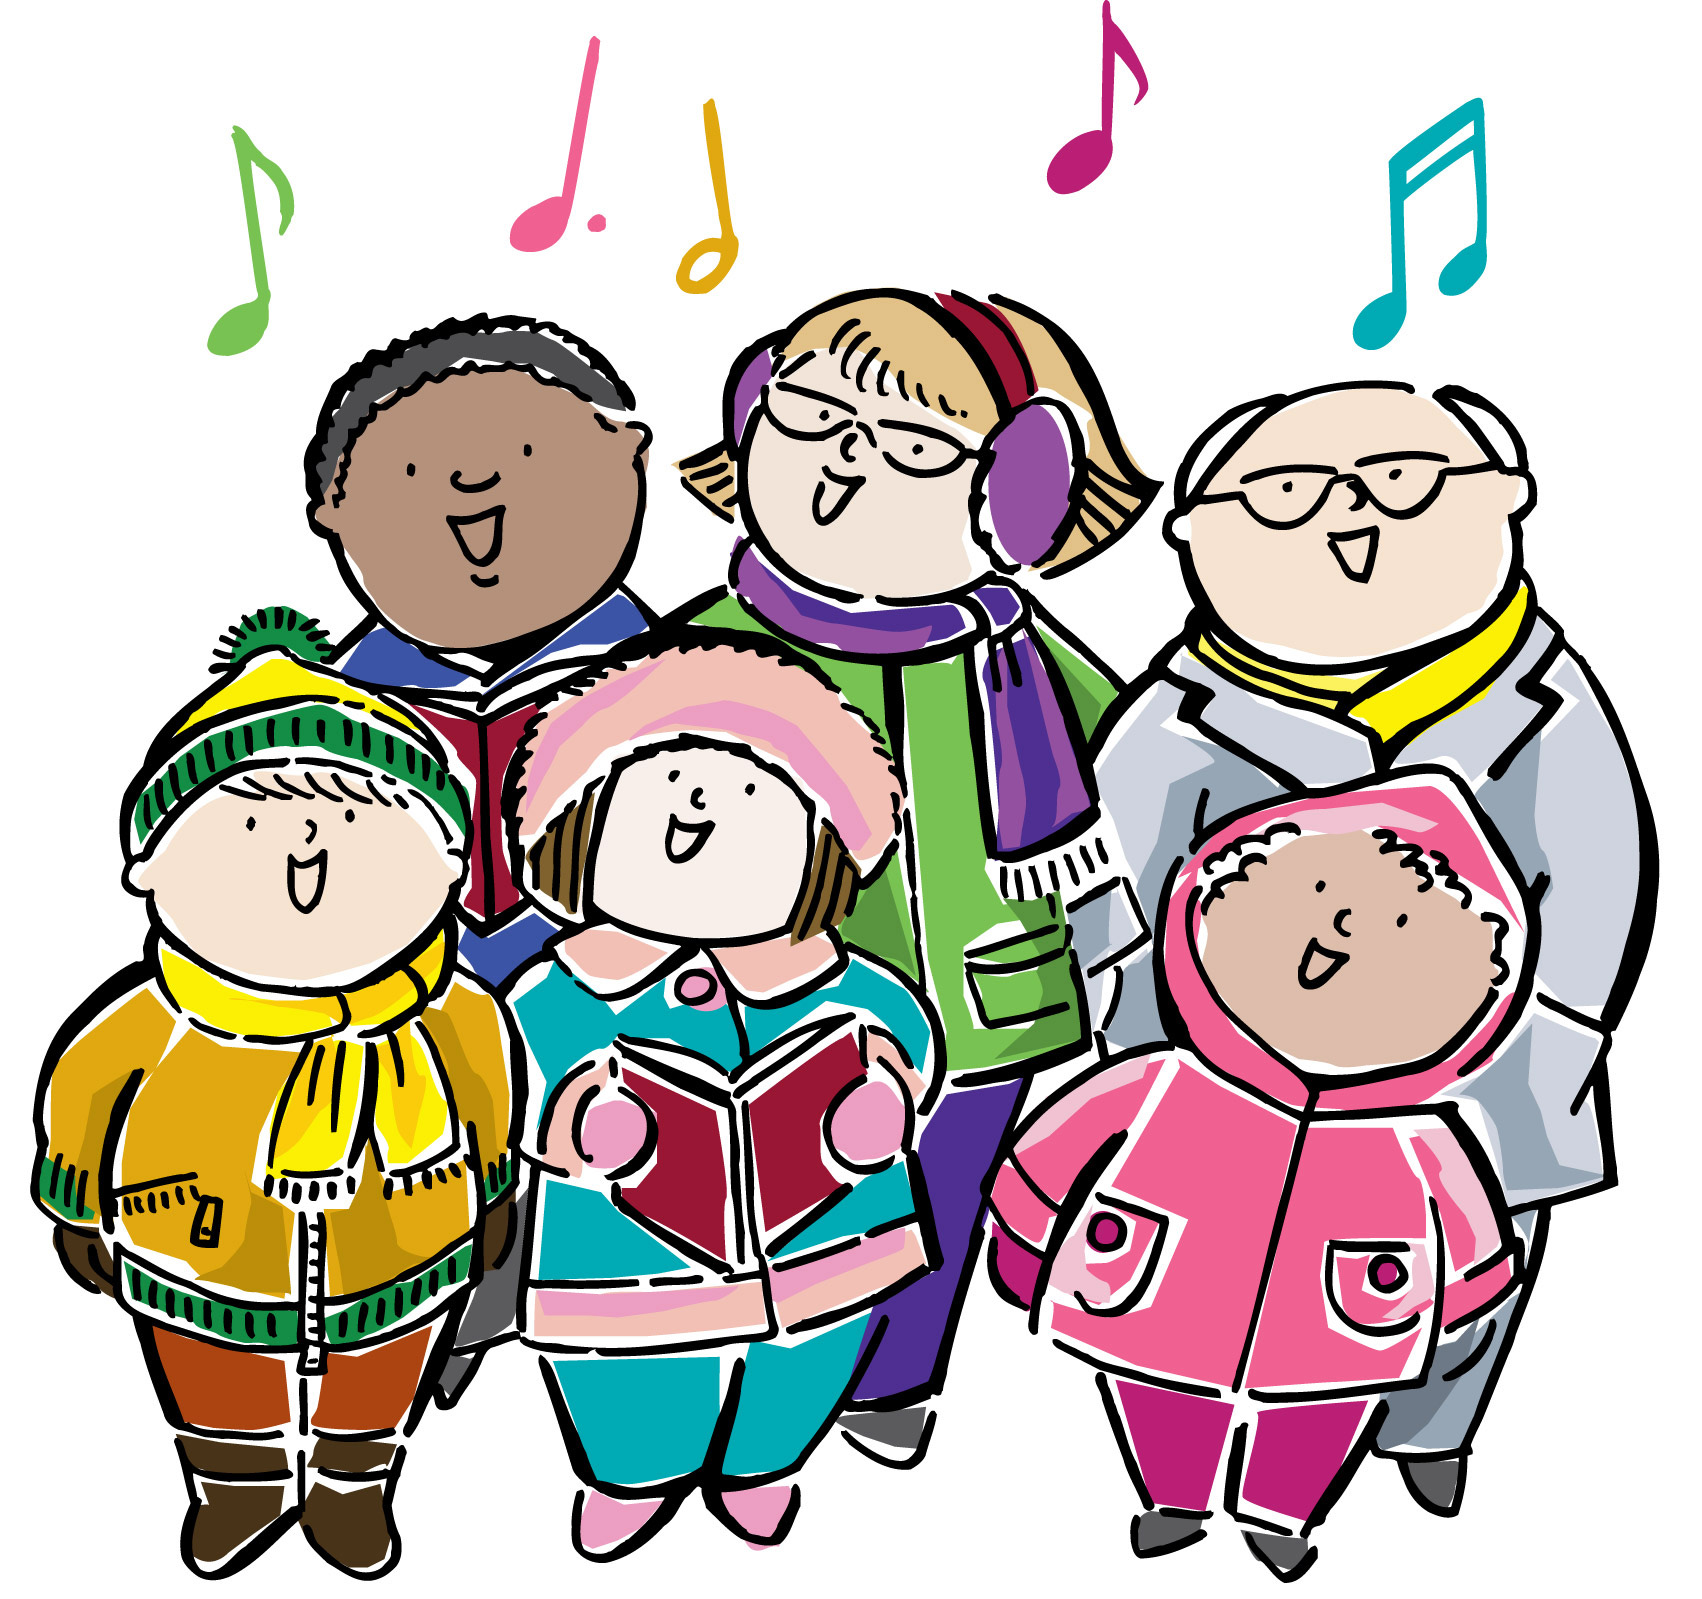 Caroling clipart tradition. Mes to host annual